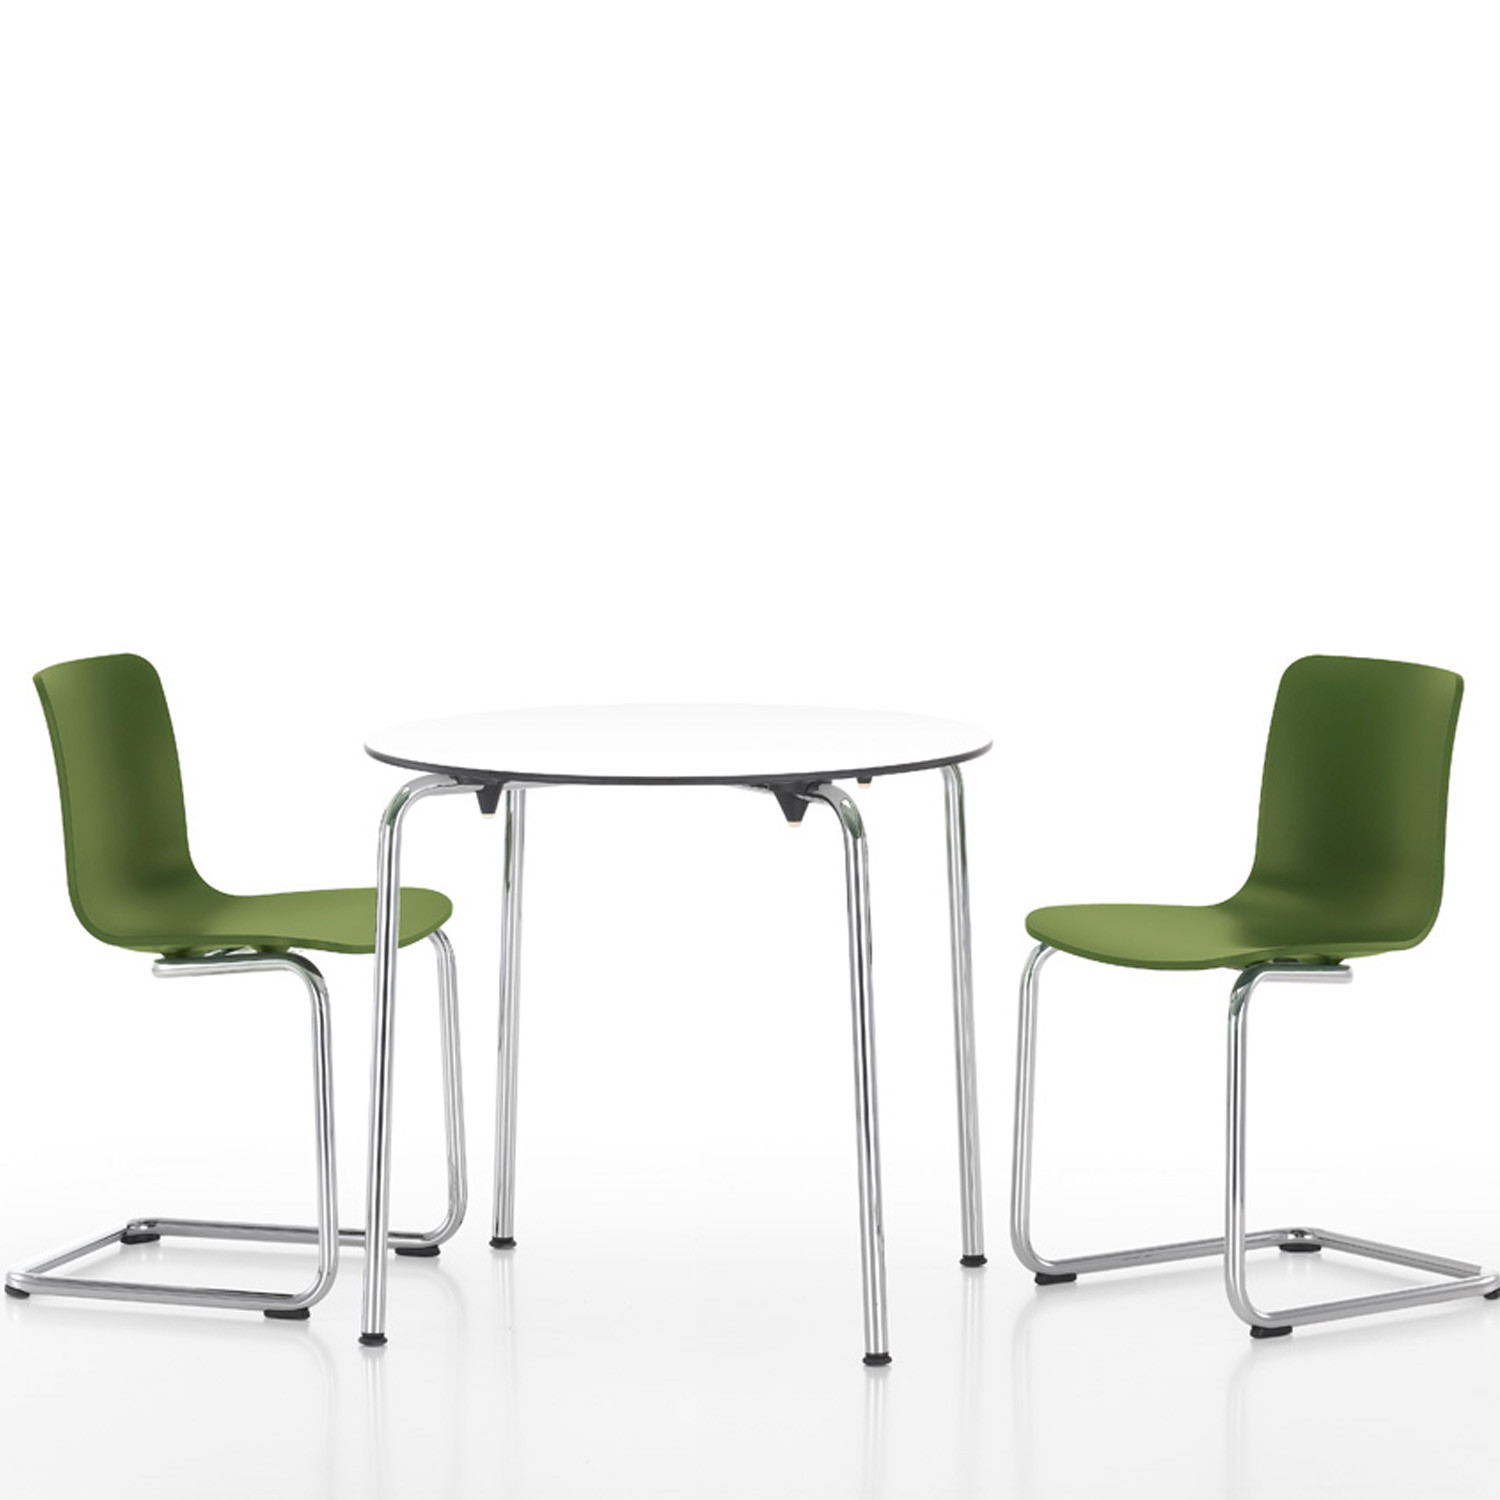 HAL Cantilever Chairs and HAL Table